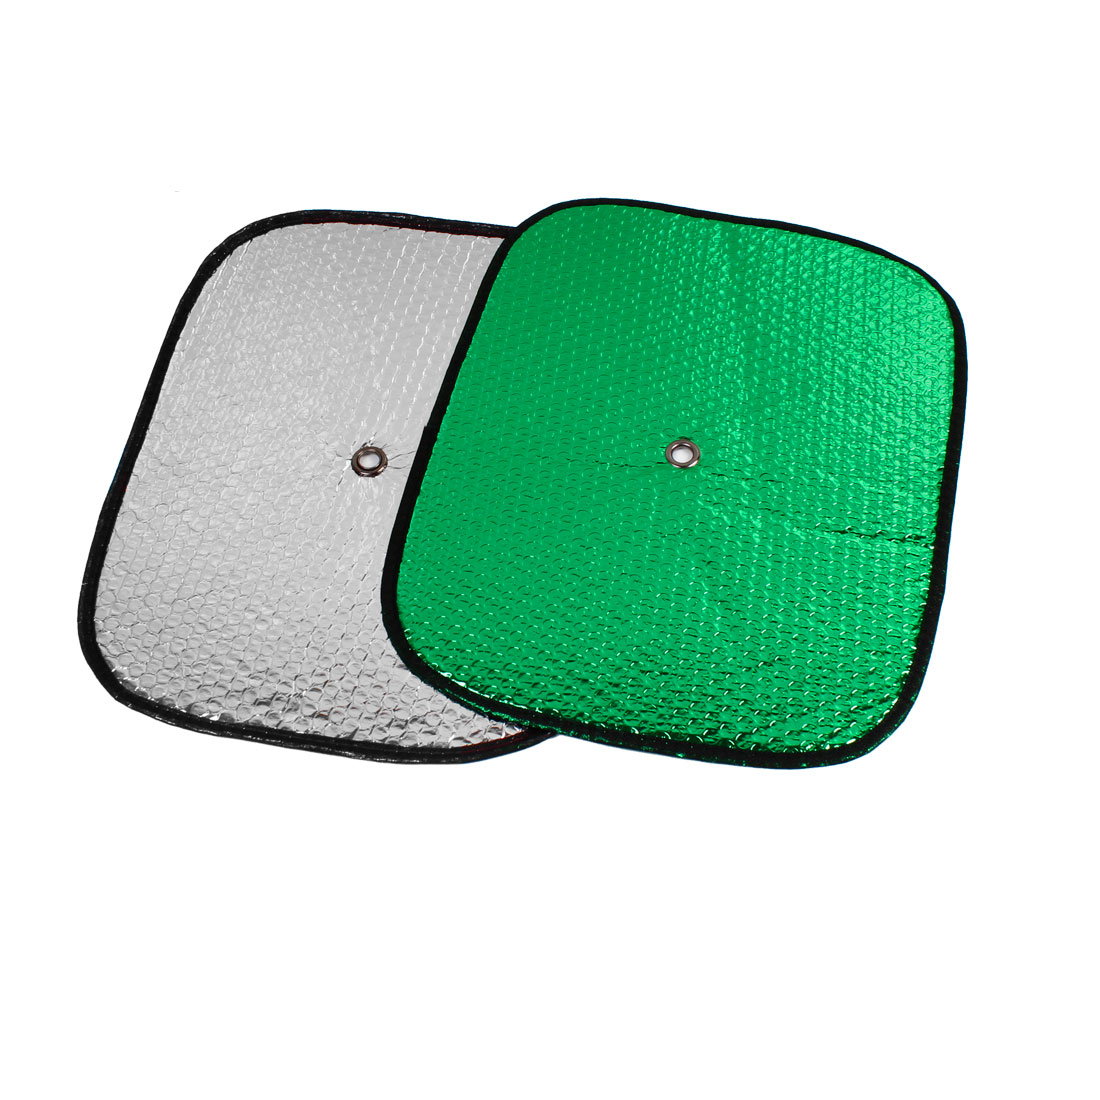 44cm x 35cm Green Front Rear Window Sun Shield 2PCS w Suction Cup for Auto